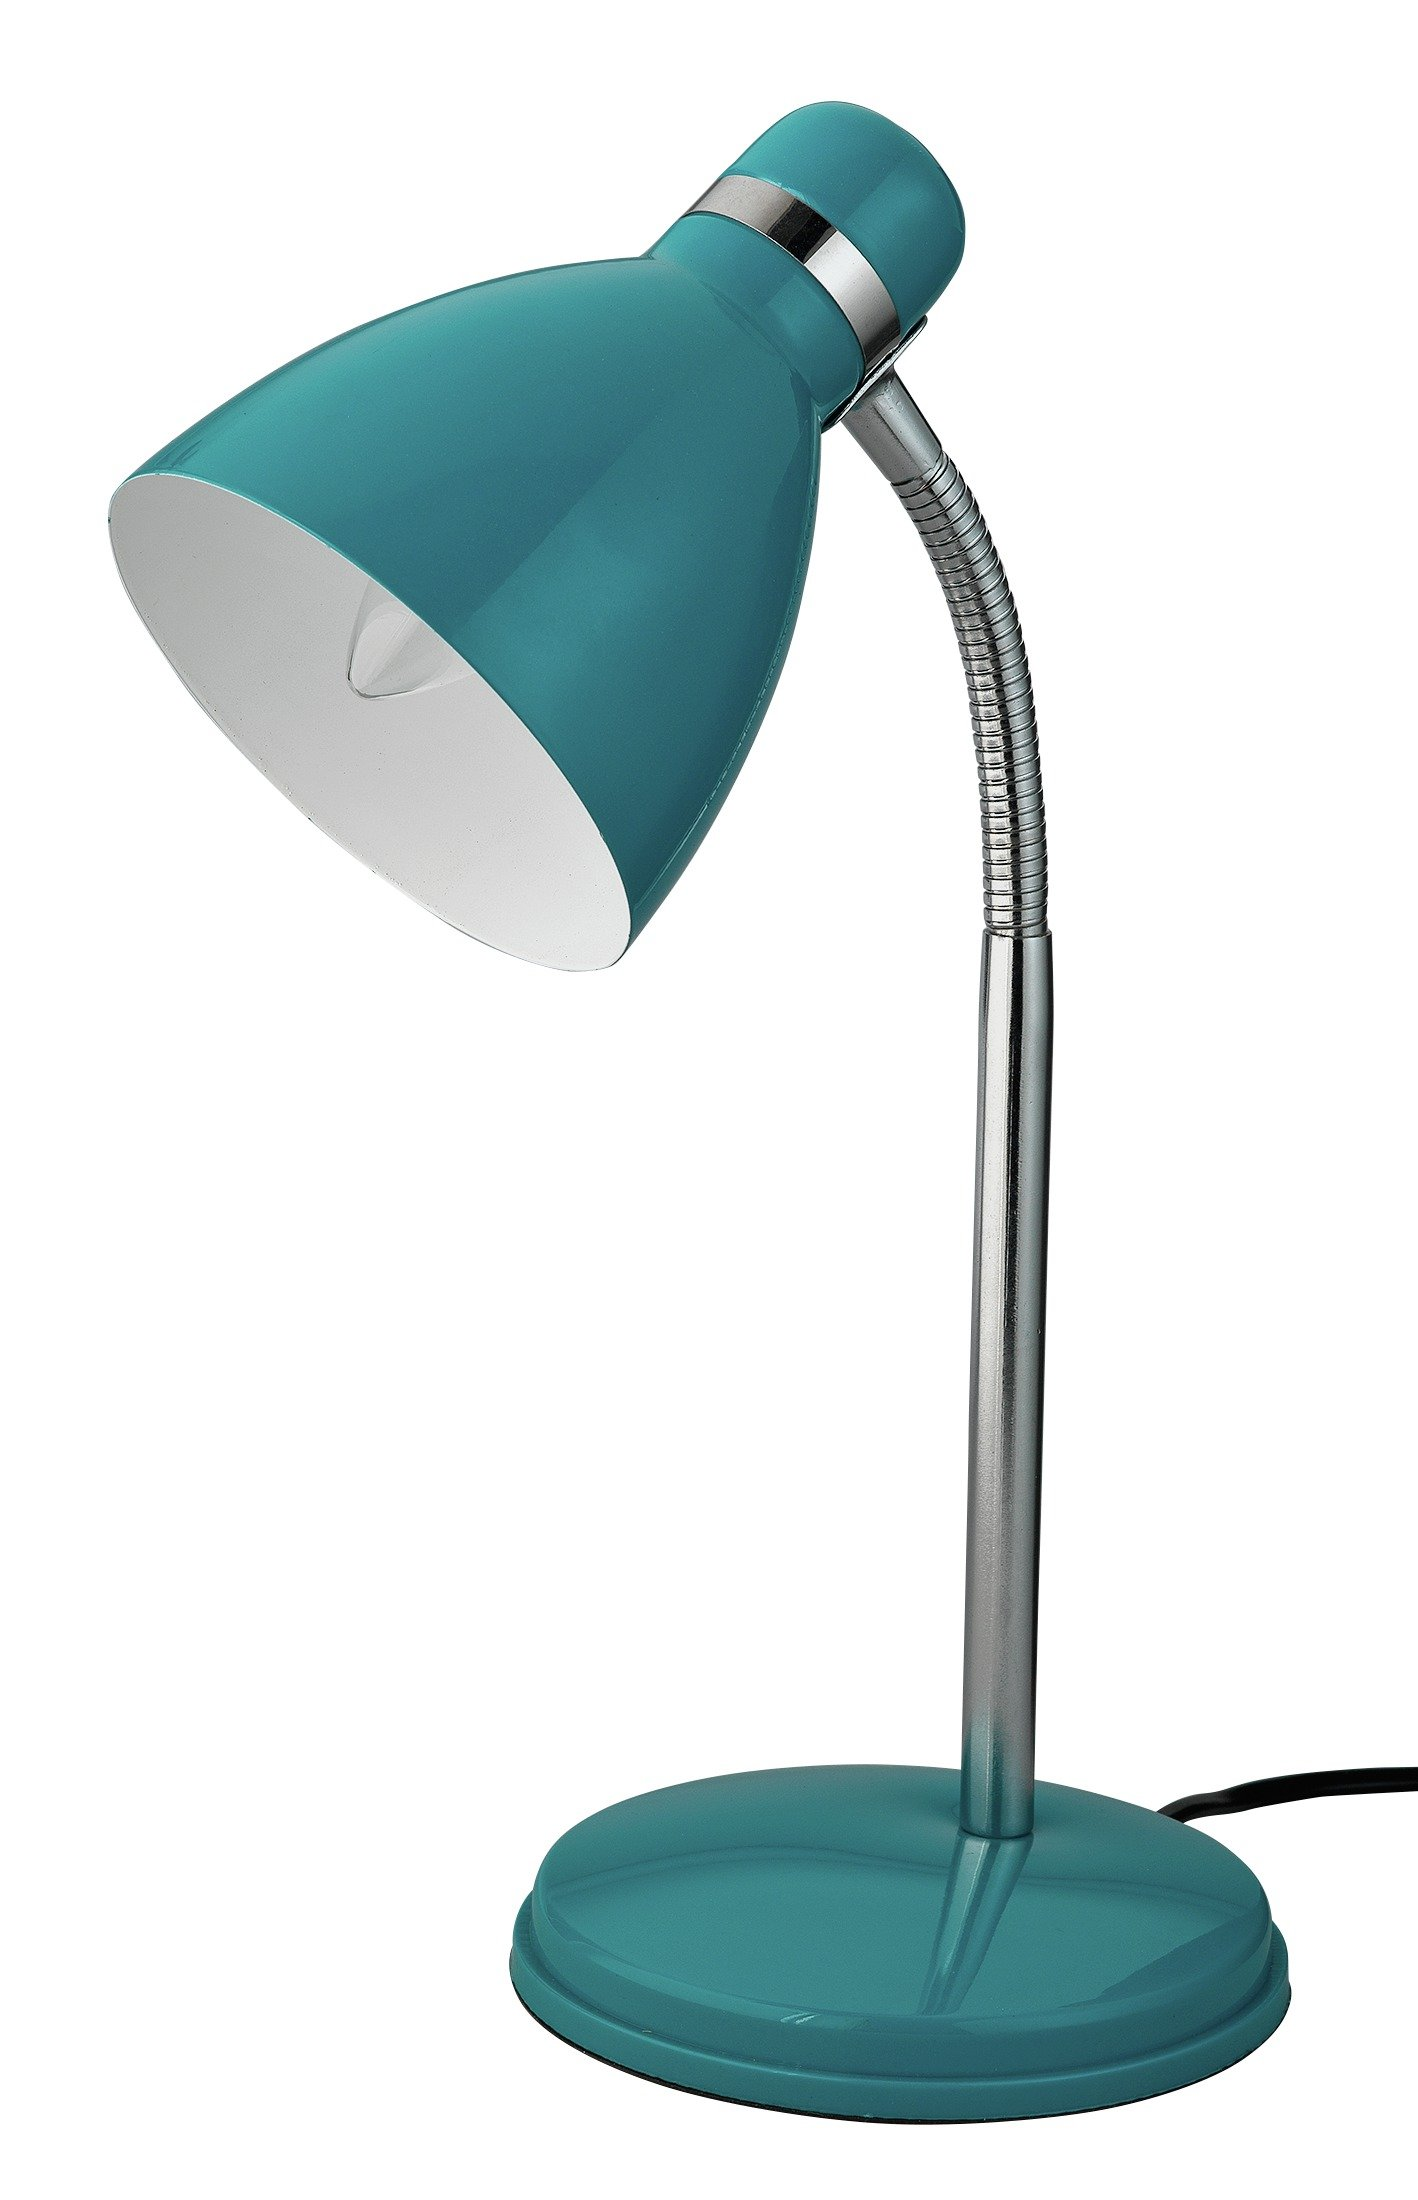 Image of ColourMatch Desk Lamp - Teal